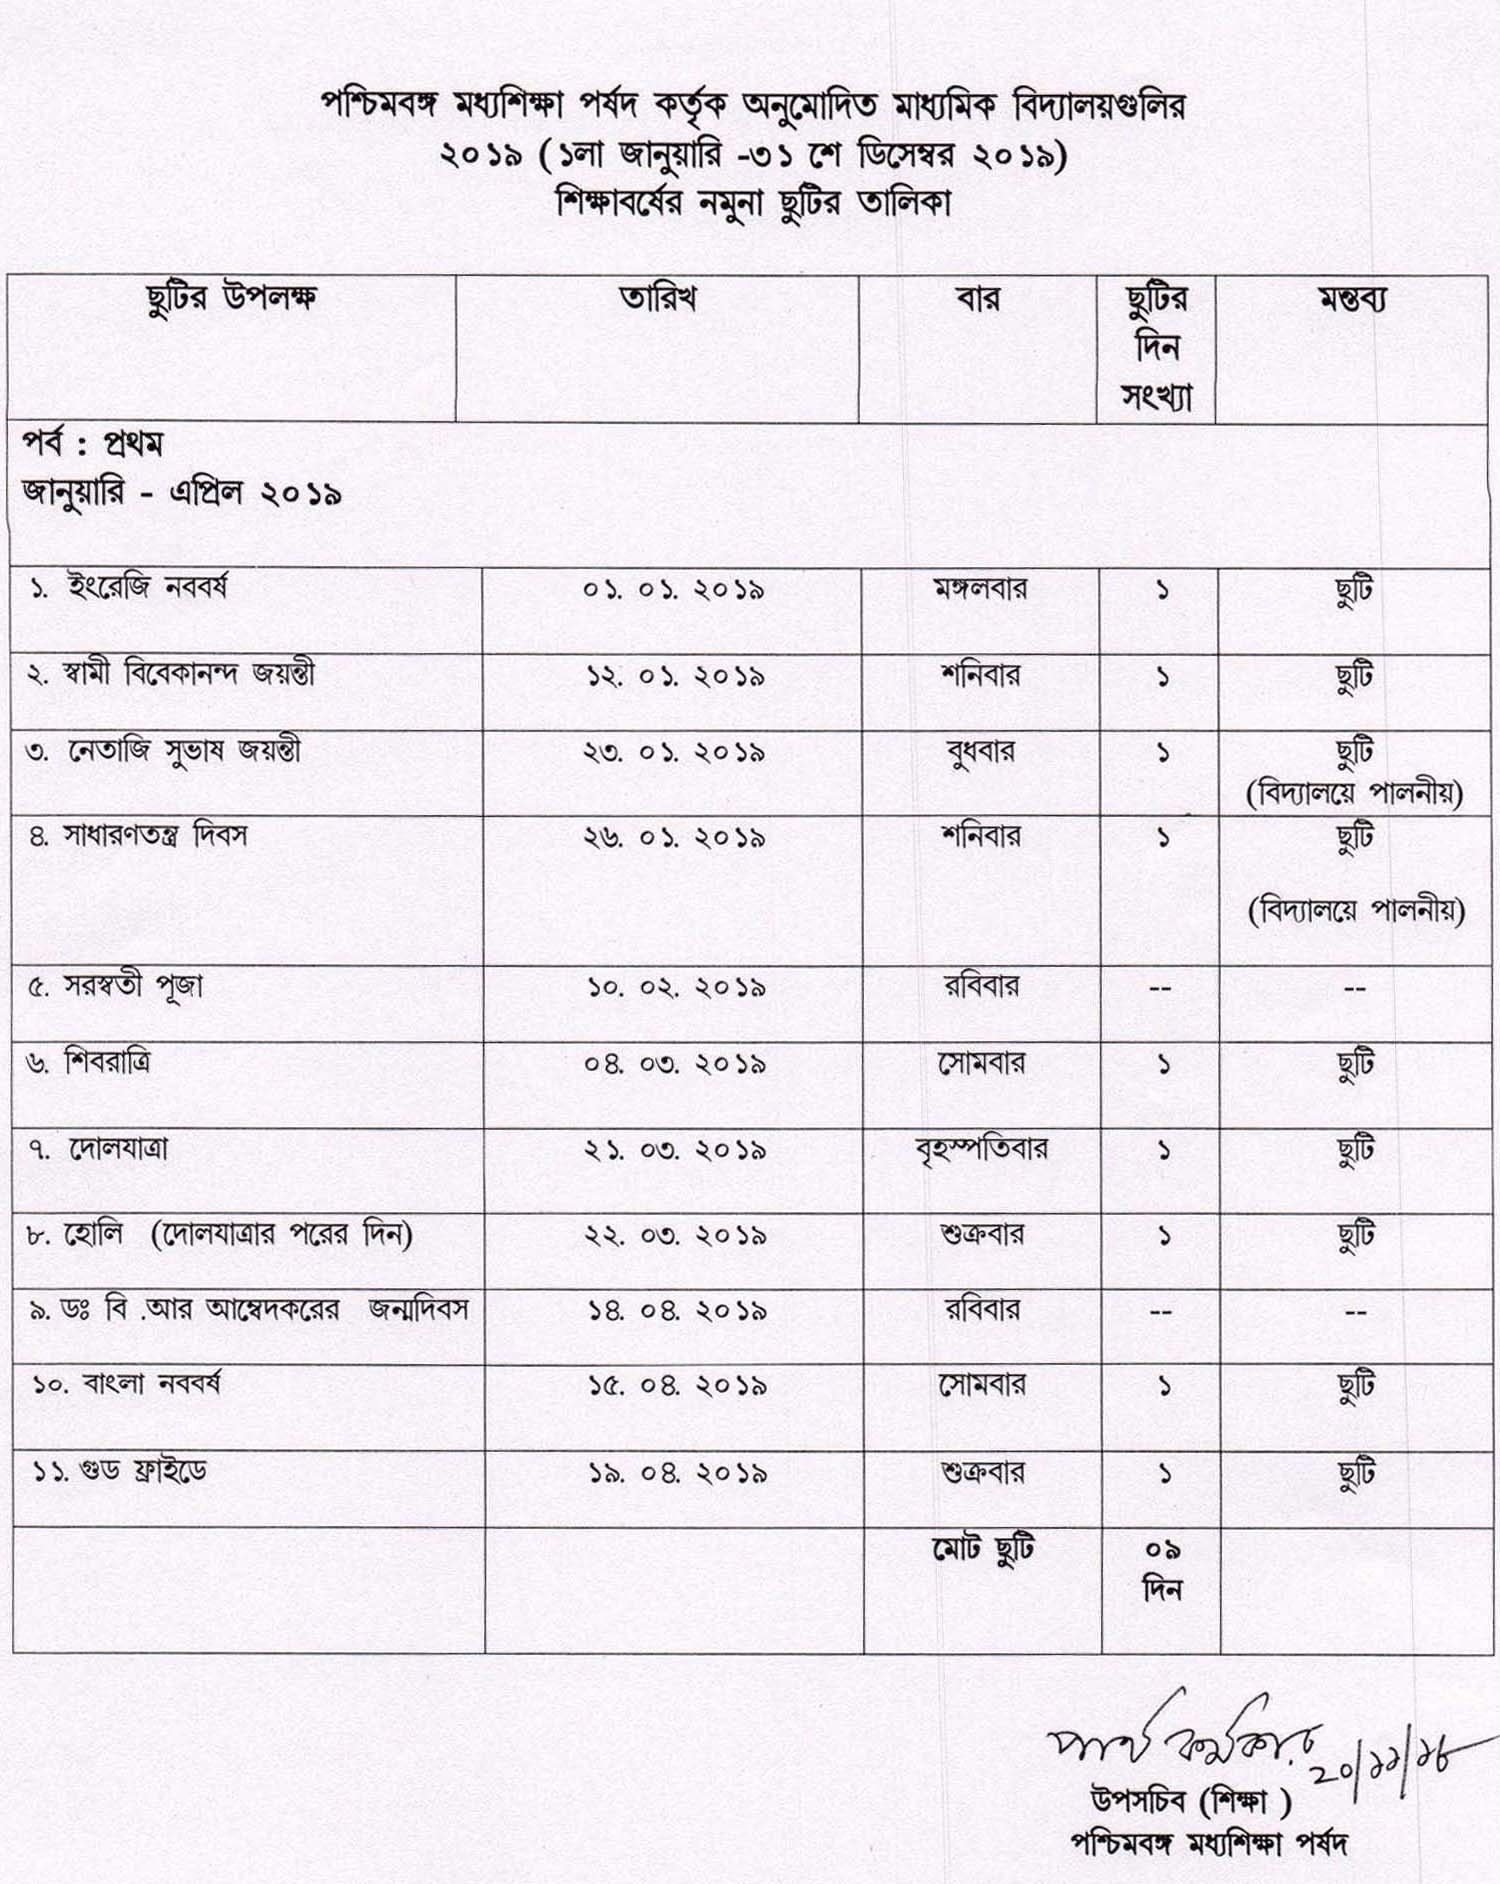 Holiday List Of West Bengal Board Of Secondary Education 2019 | Wbxpress Calendar 2019 Holidays List